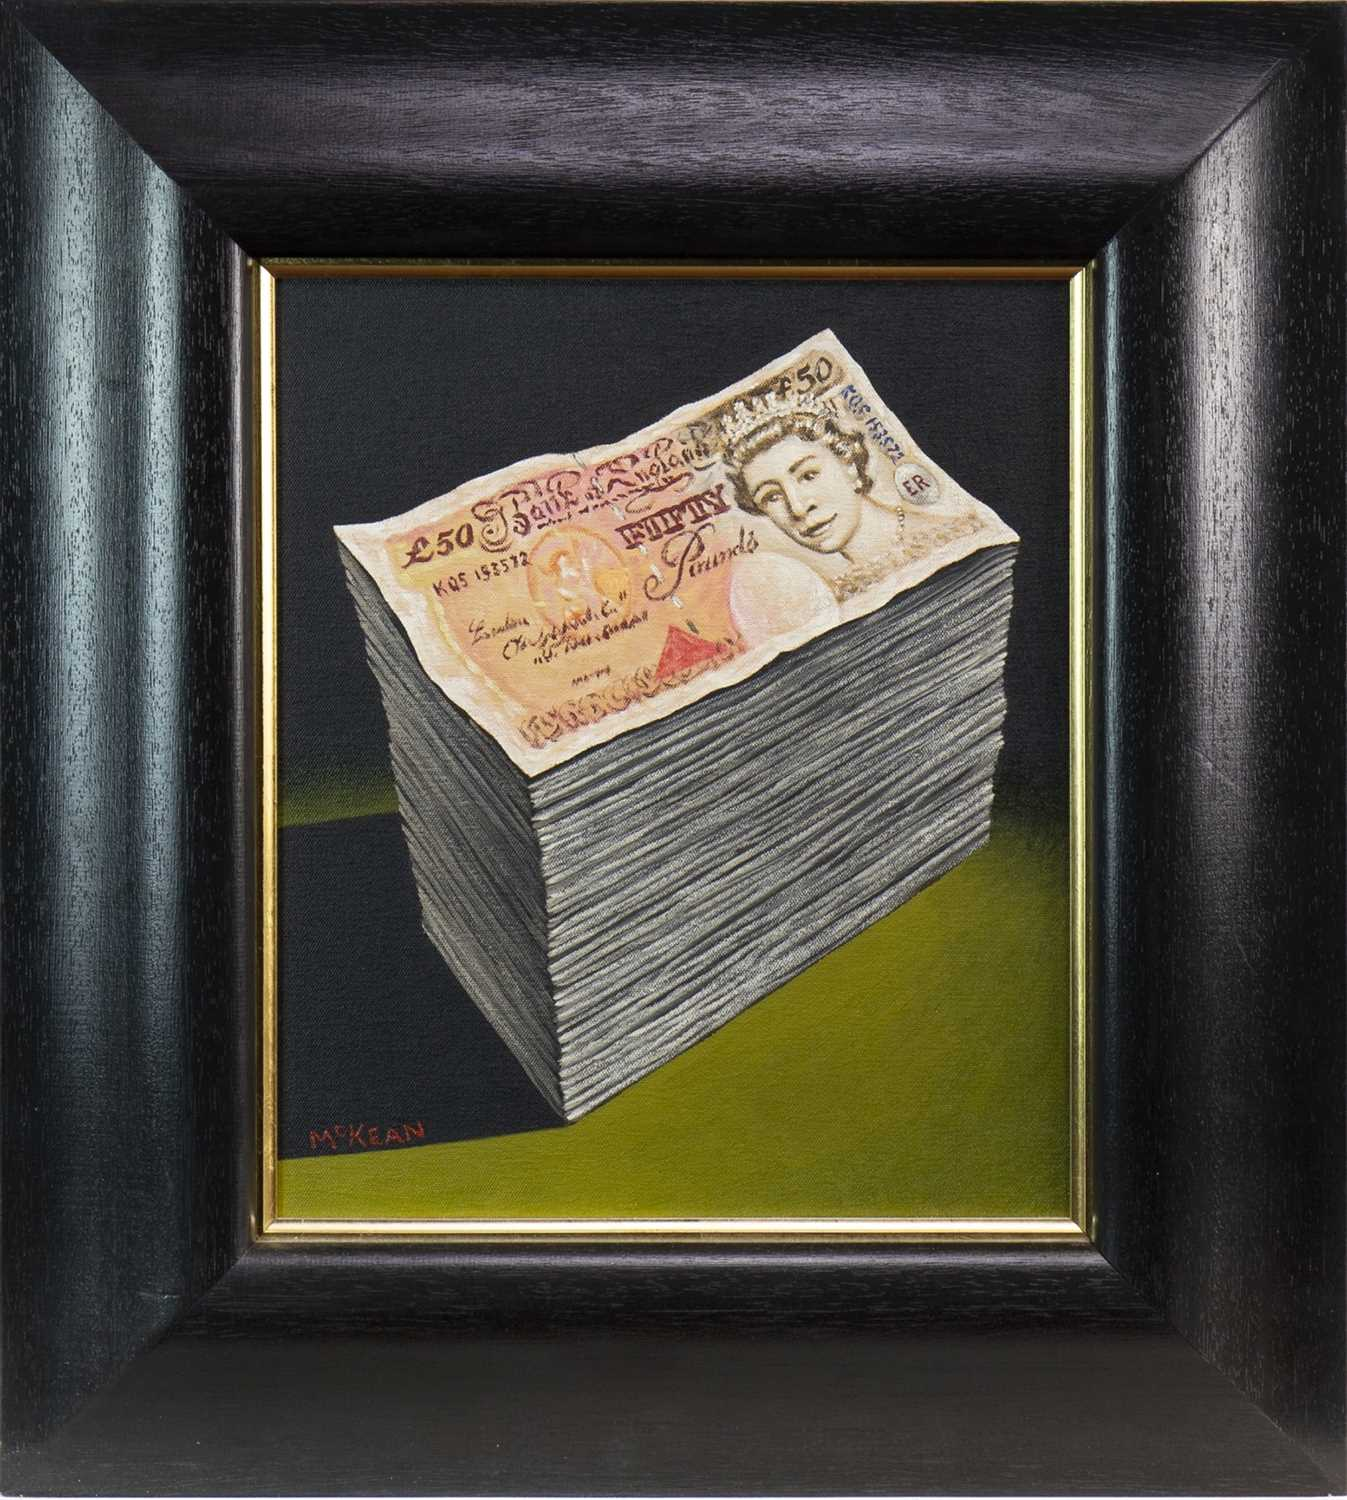 Lot 509-BANK OF ENGLAND, AN OIL BY GRAHAM MCKEAN